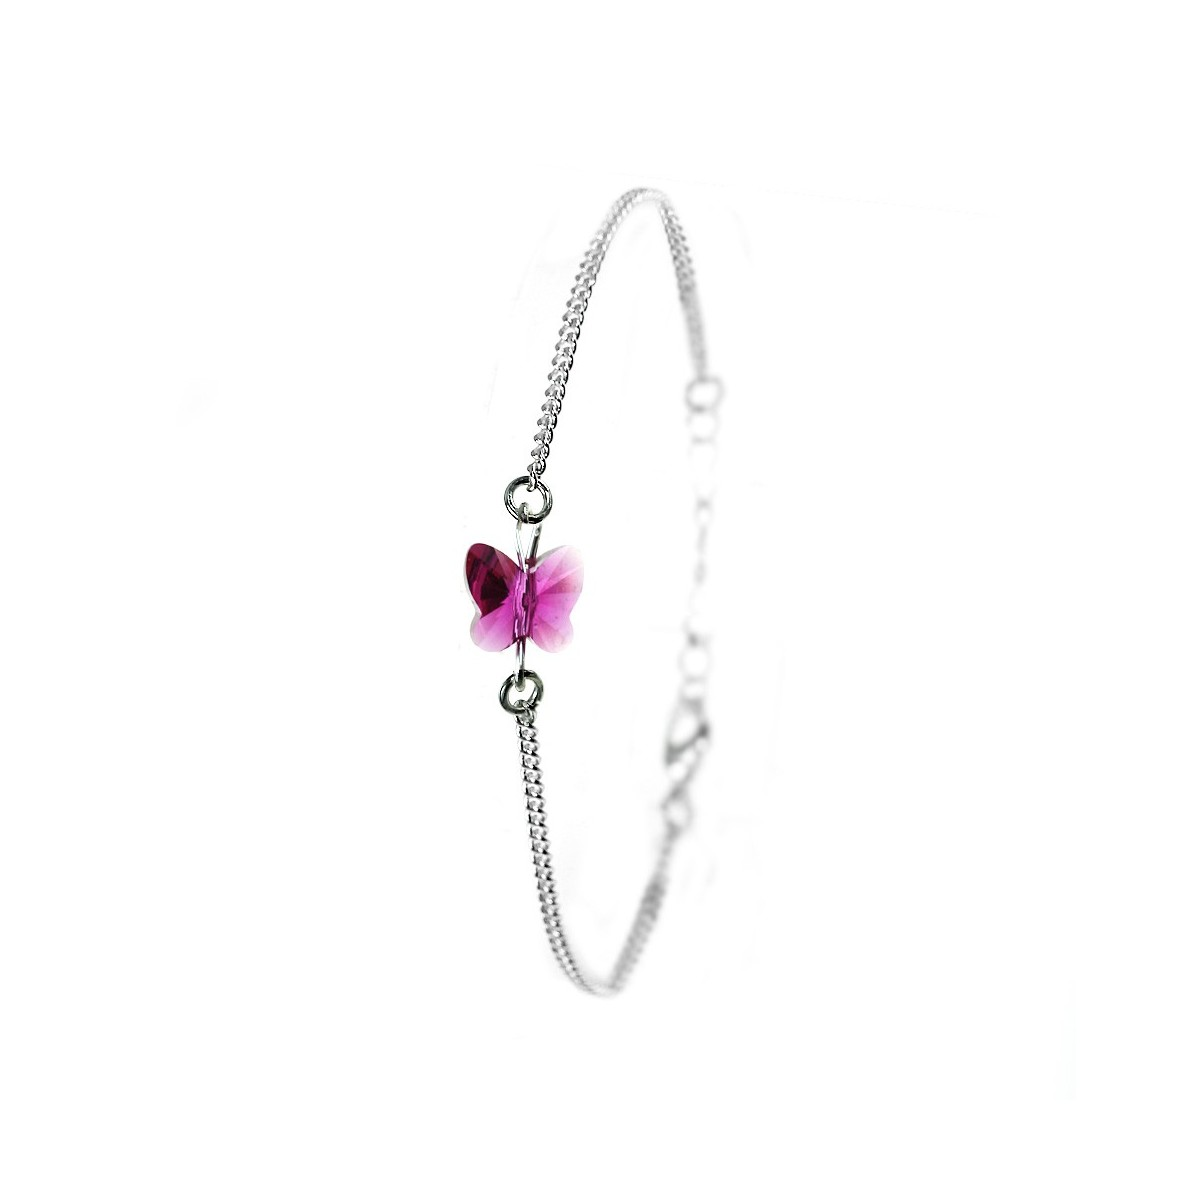 Bracelet argenté So Charm orné d'un papillon rose made with crystal from Swarovski